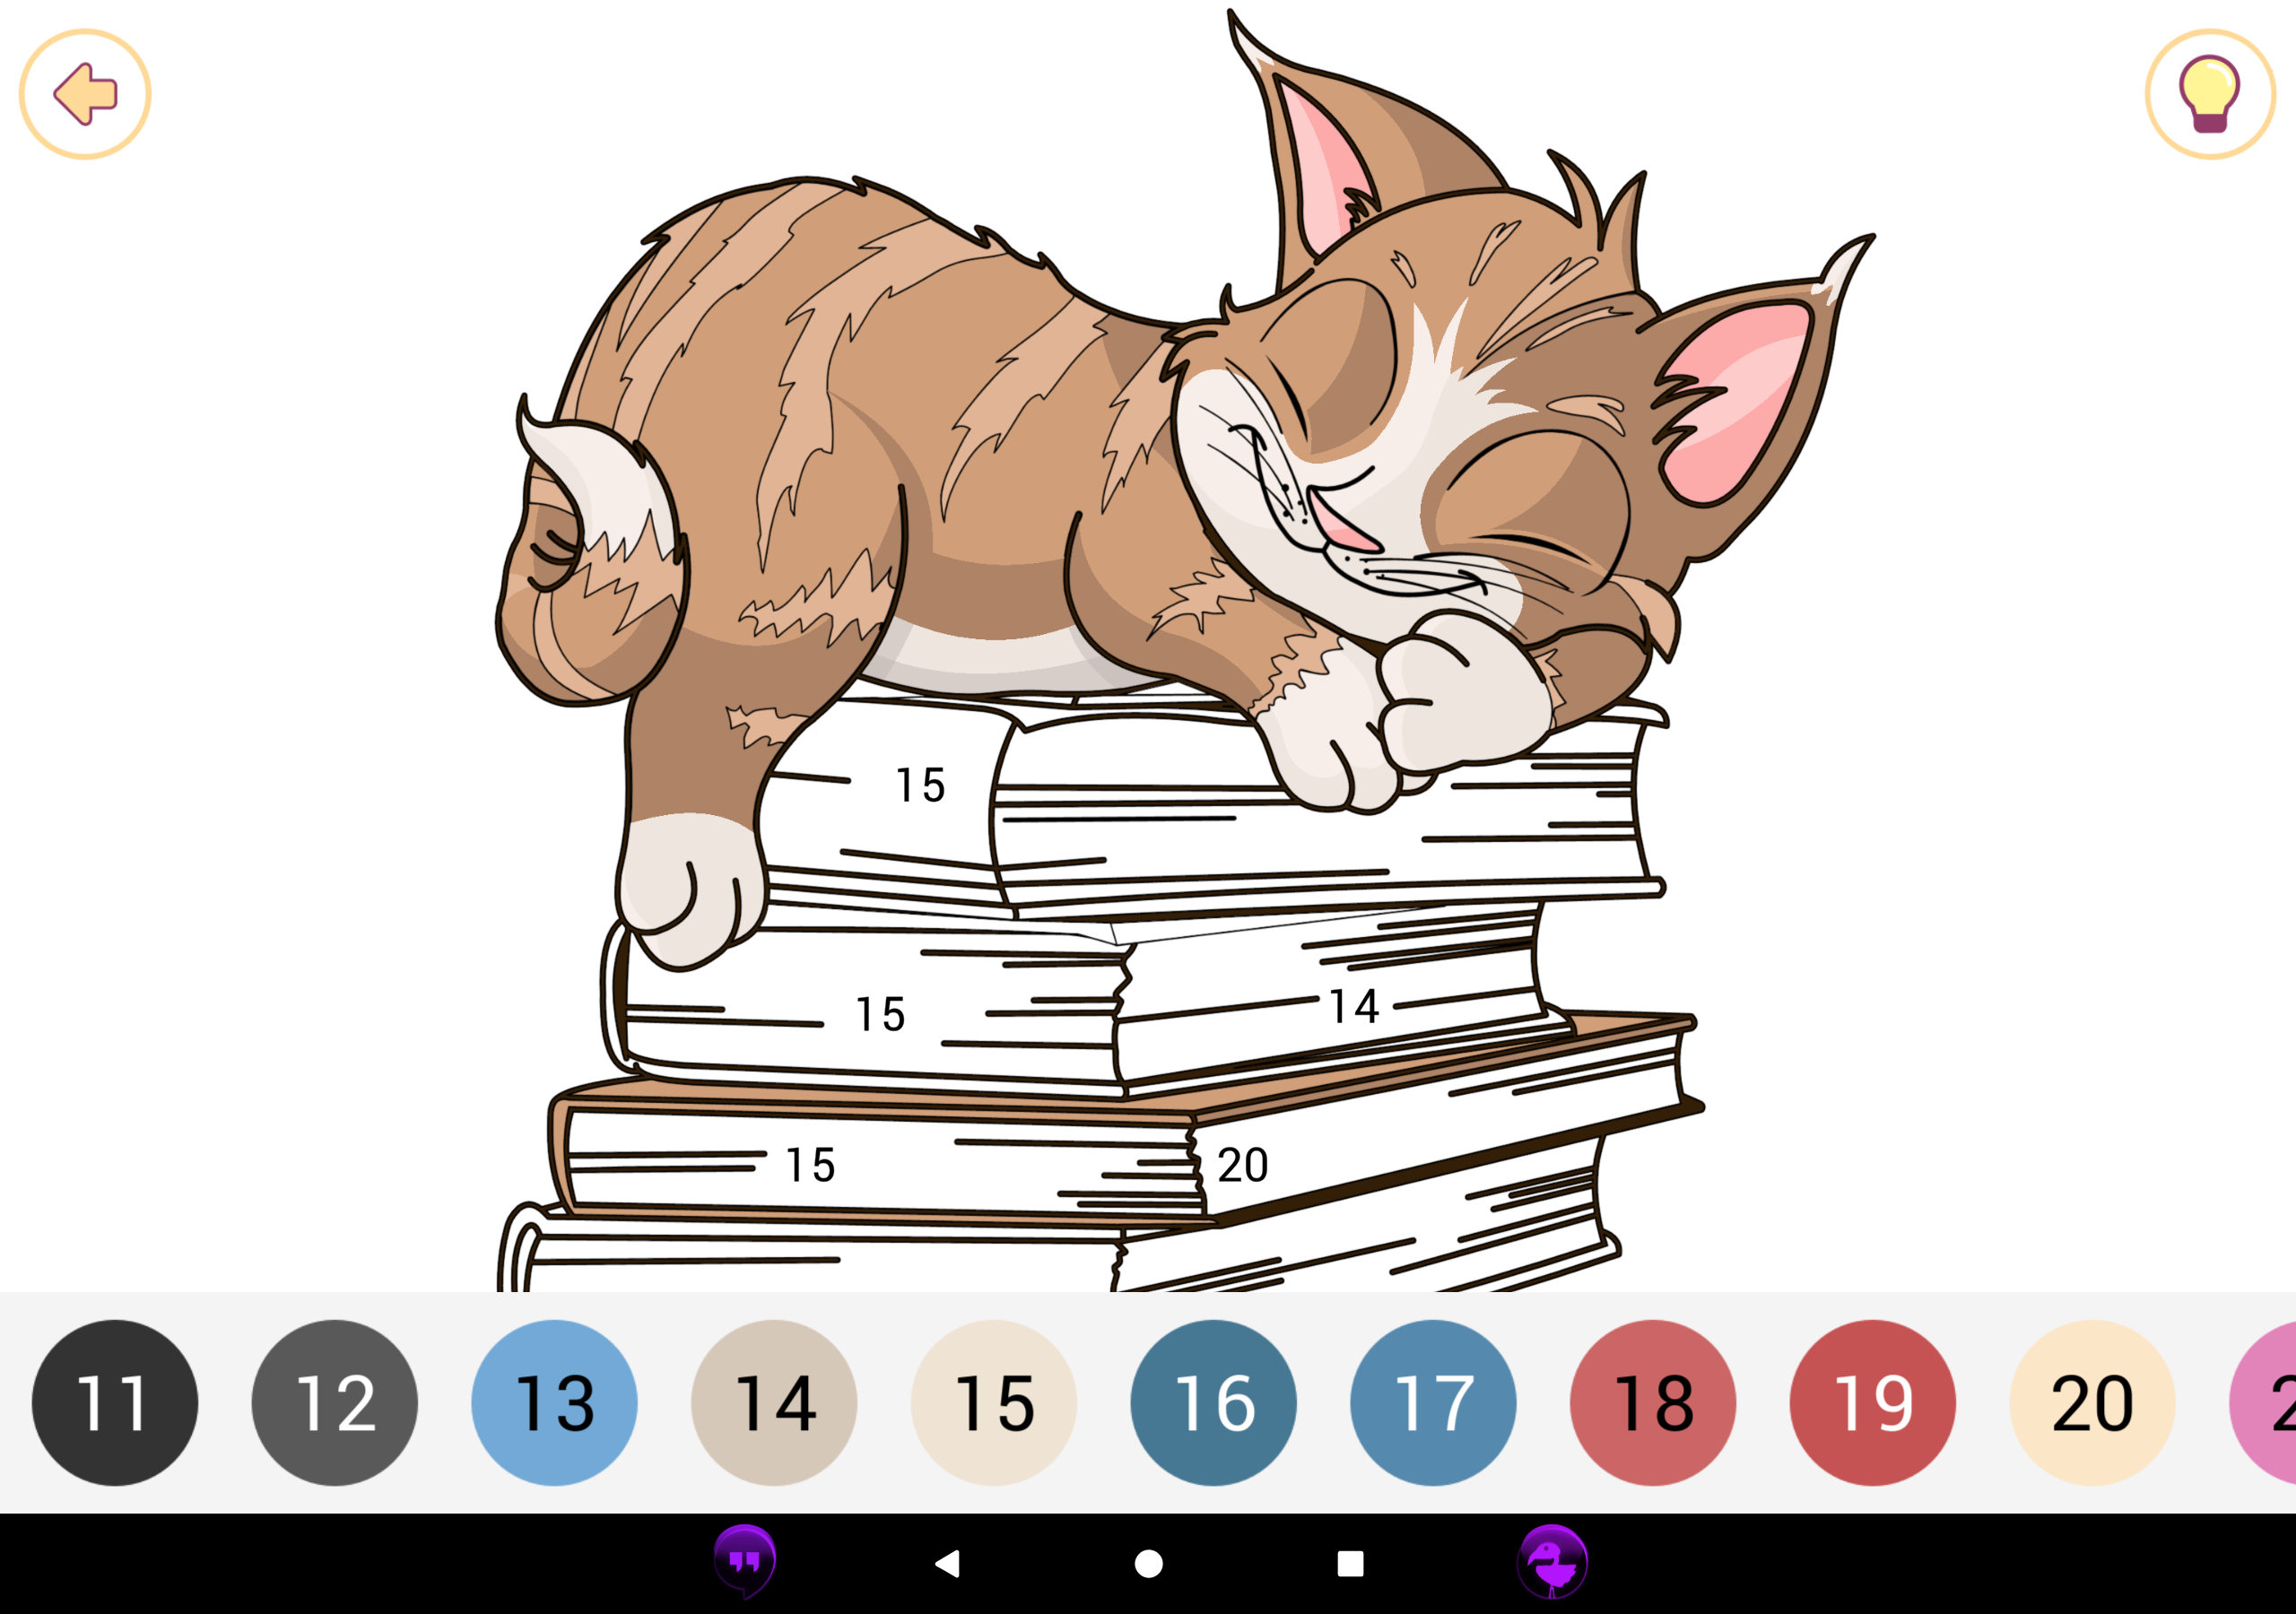 A partially coloured in picture of a cat sleeping on a pile of books